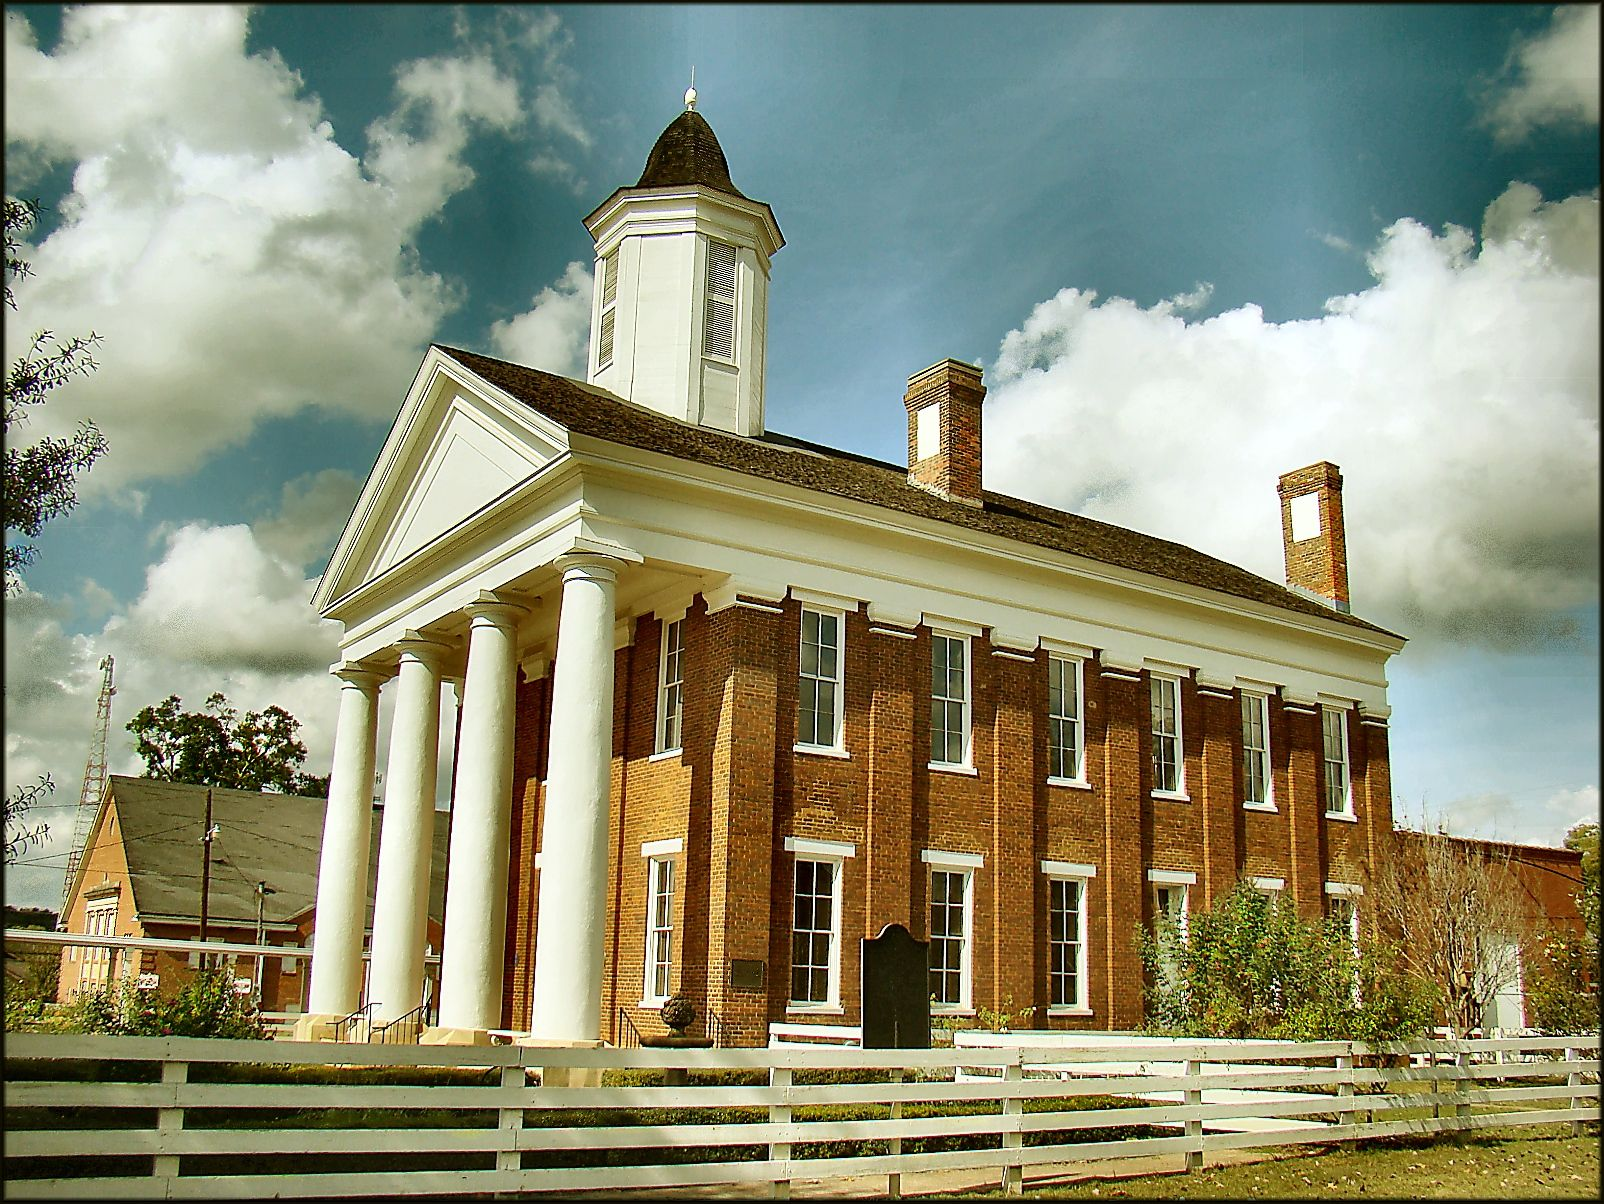 Picture Of The Old University Building In Nacogdoches Texas